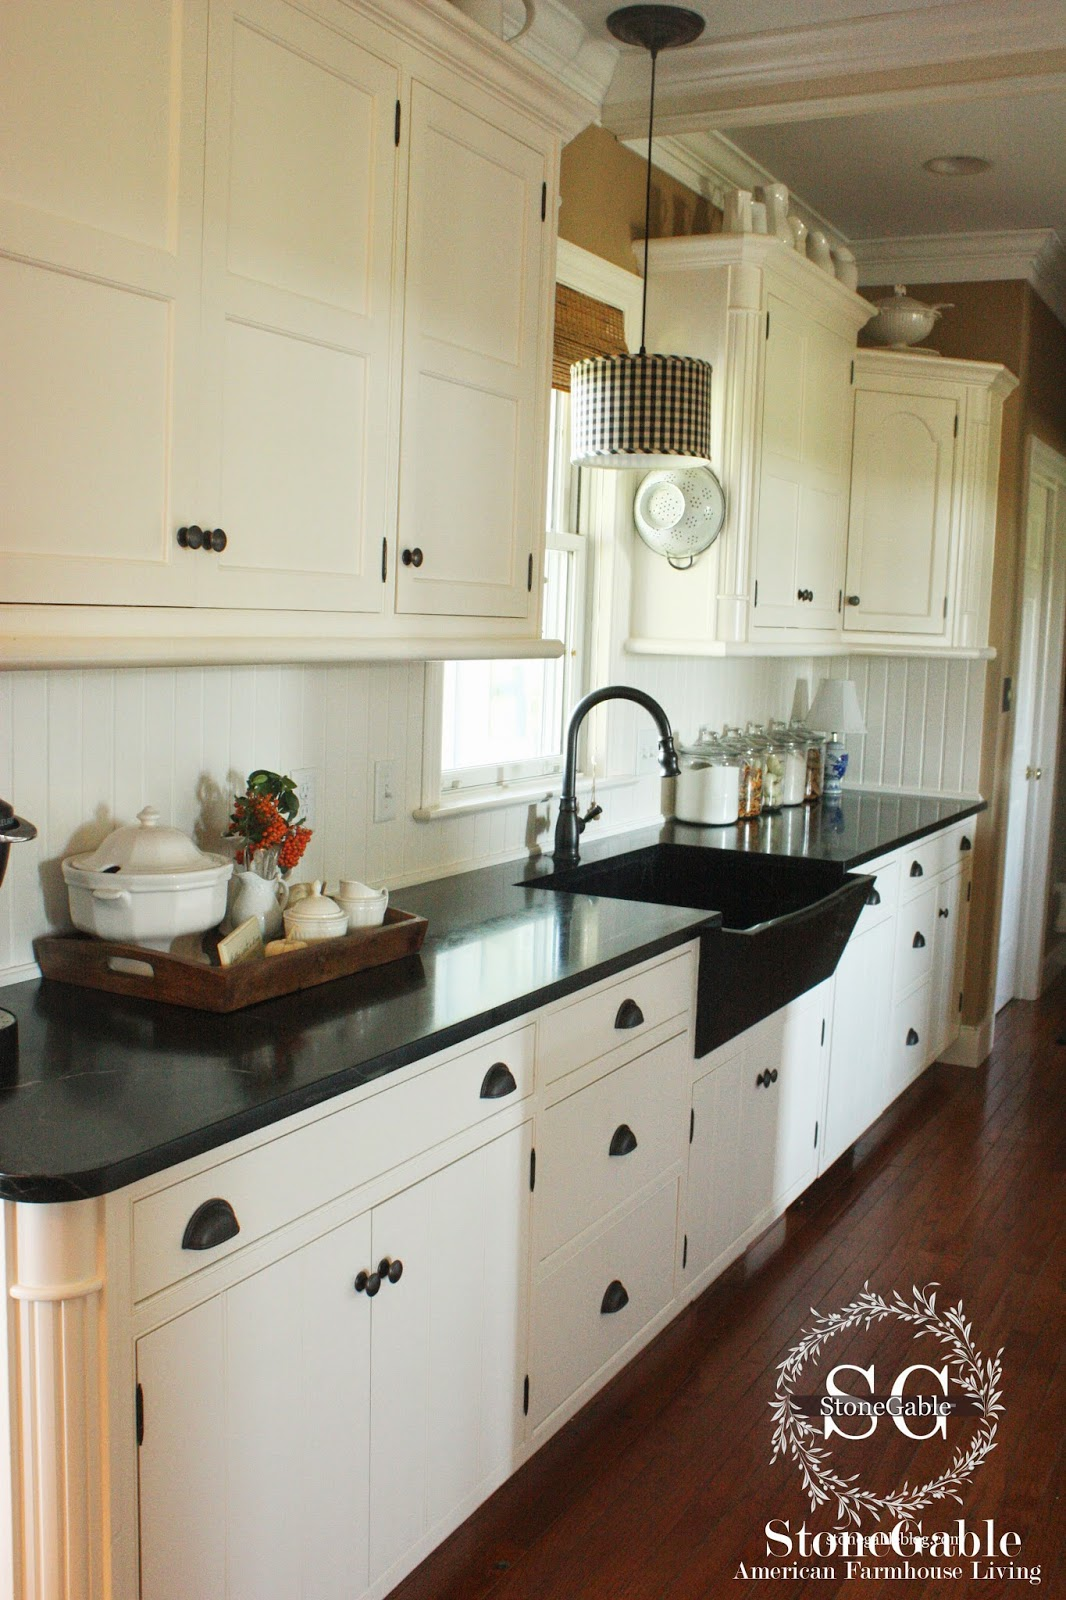 Problems With Soapstone Countertops : Stonegable elements of a farmhouse kitchen